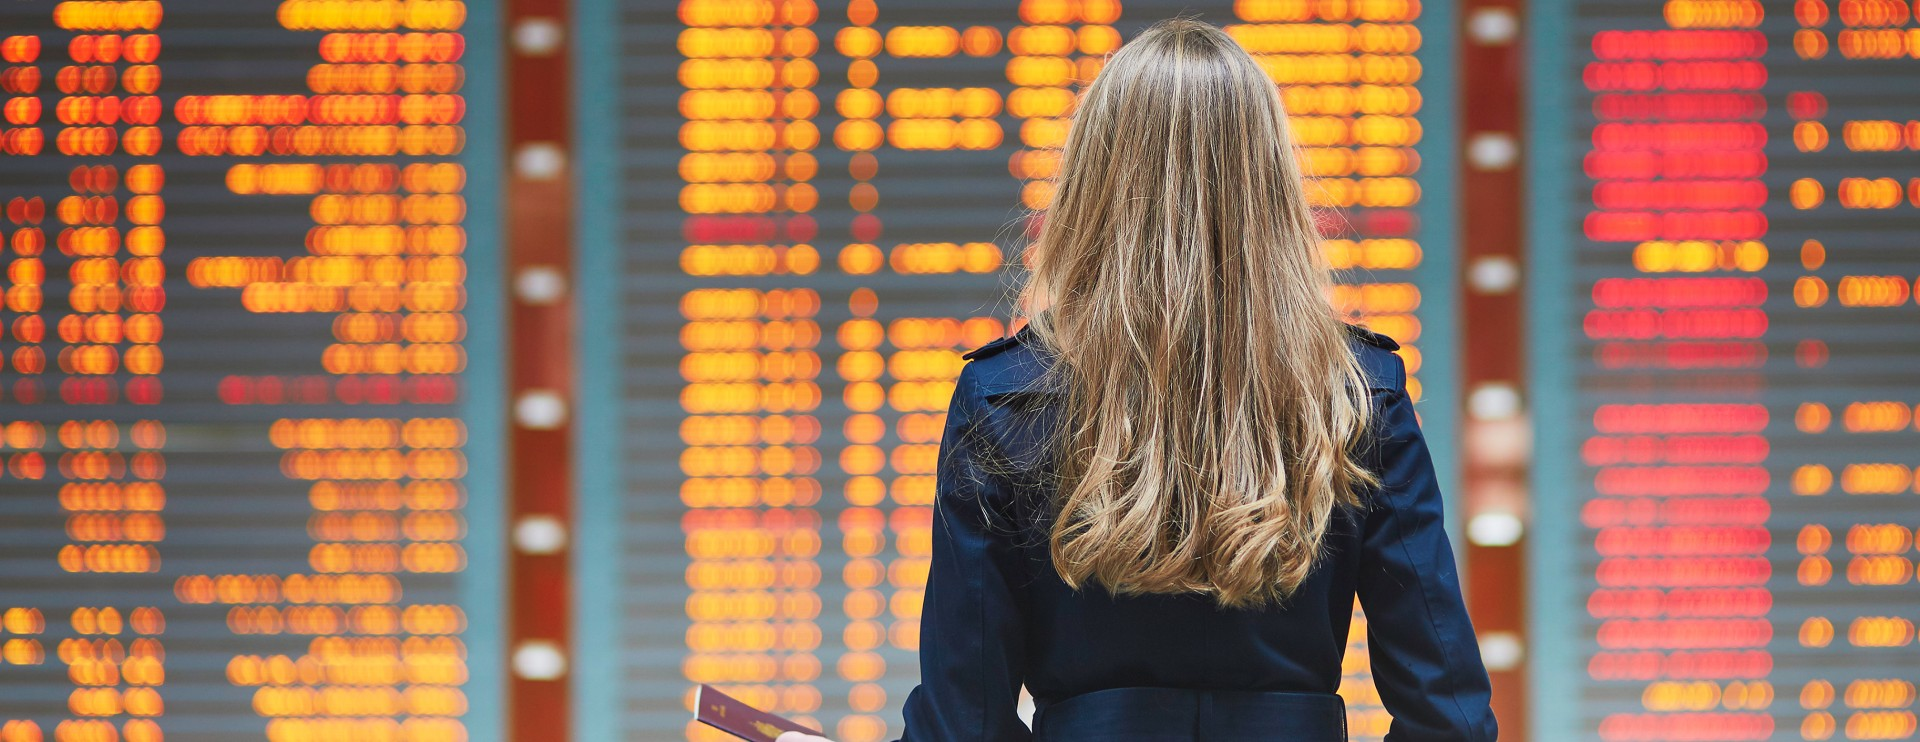 Woman standing in front of arrival/departure board at airport